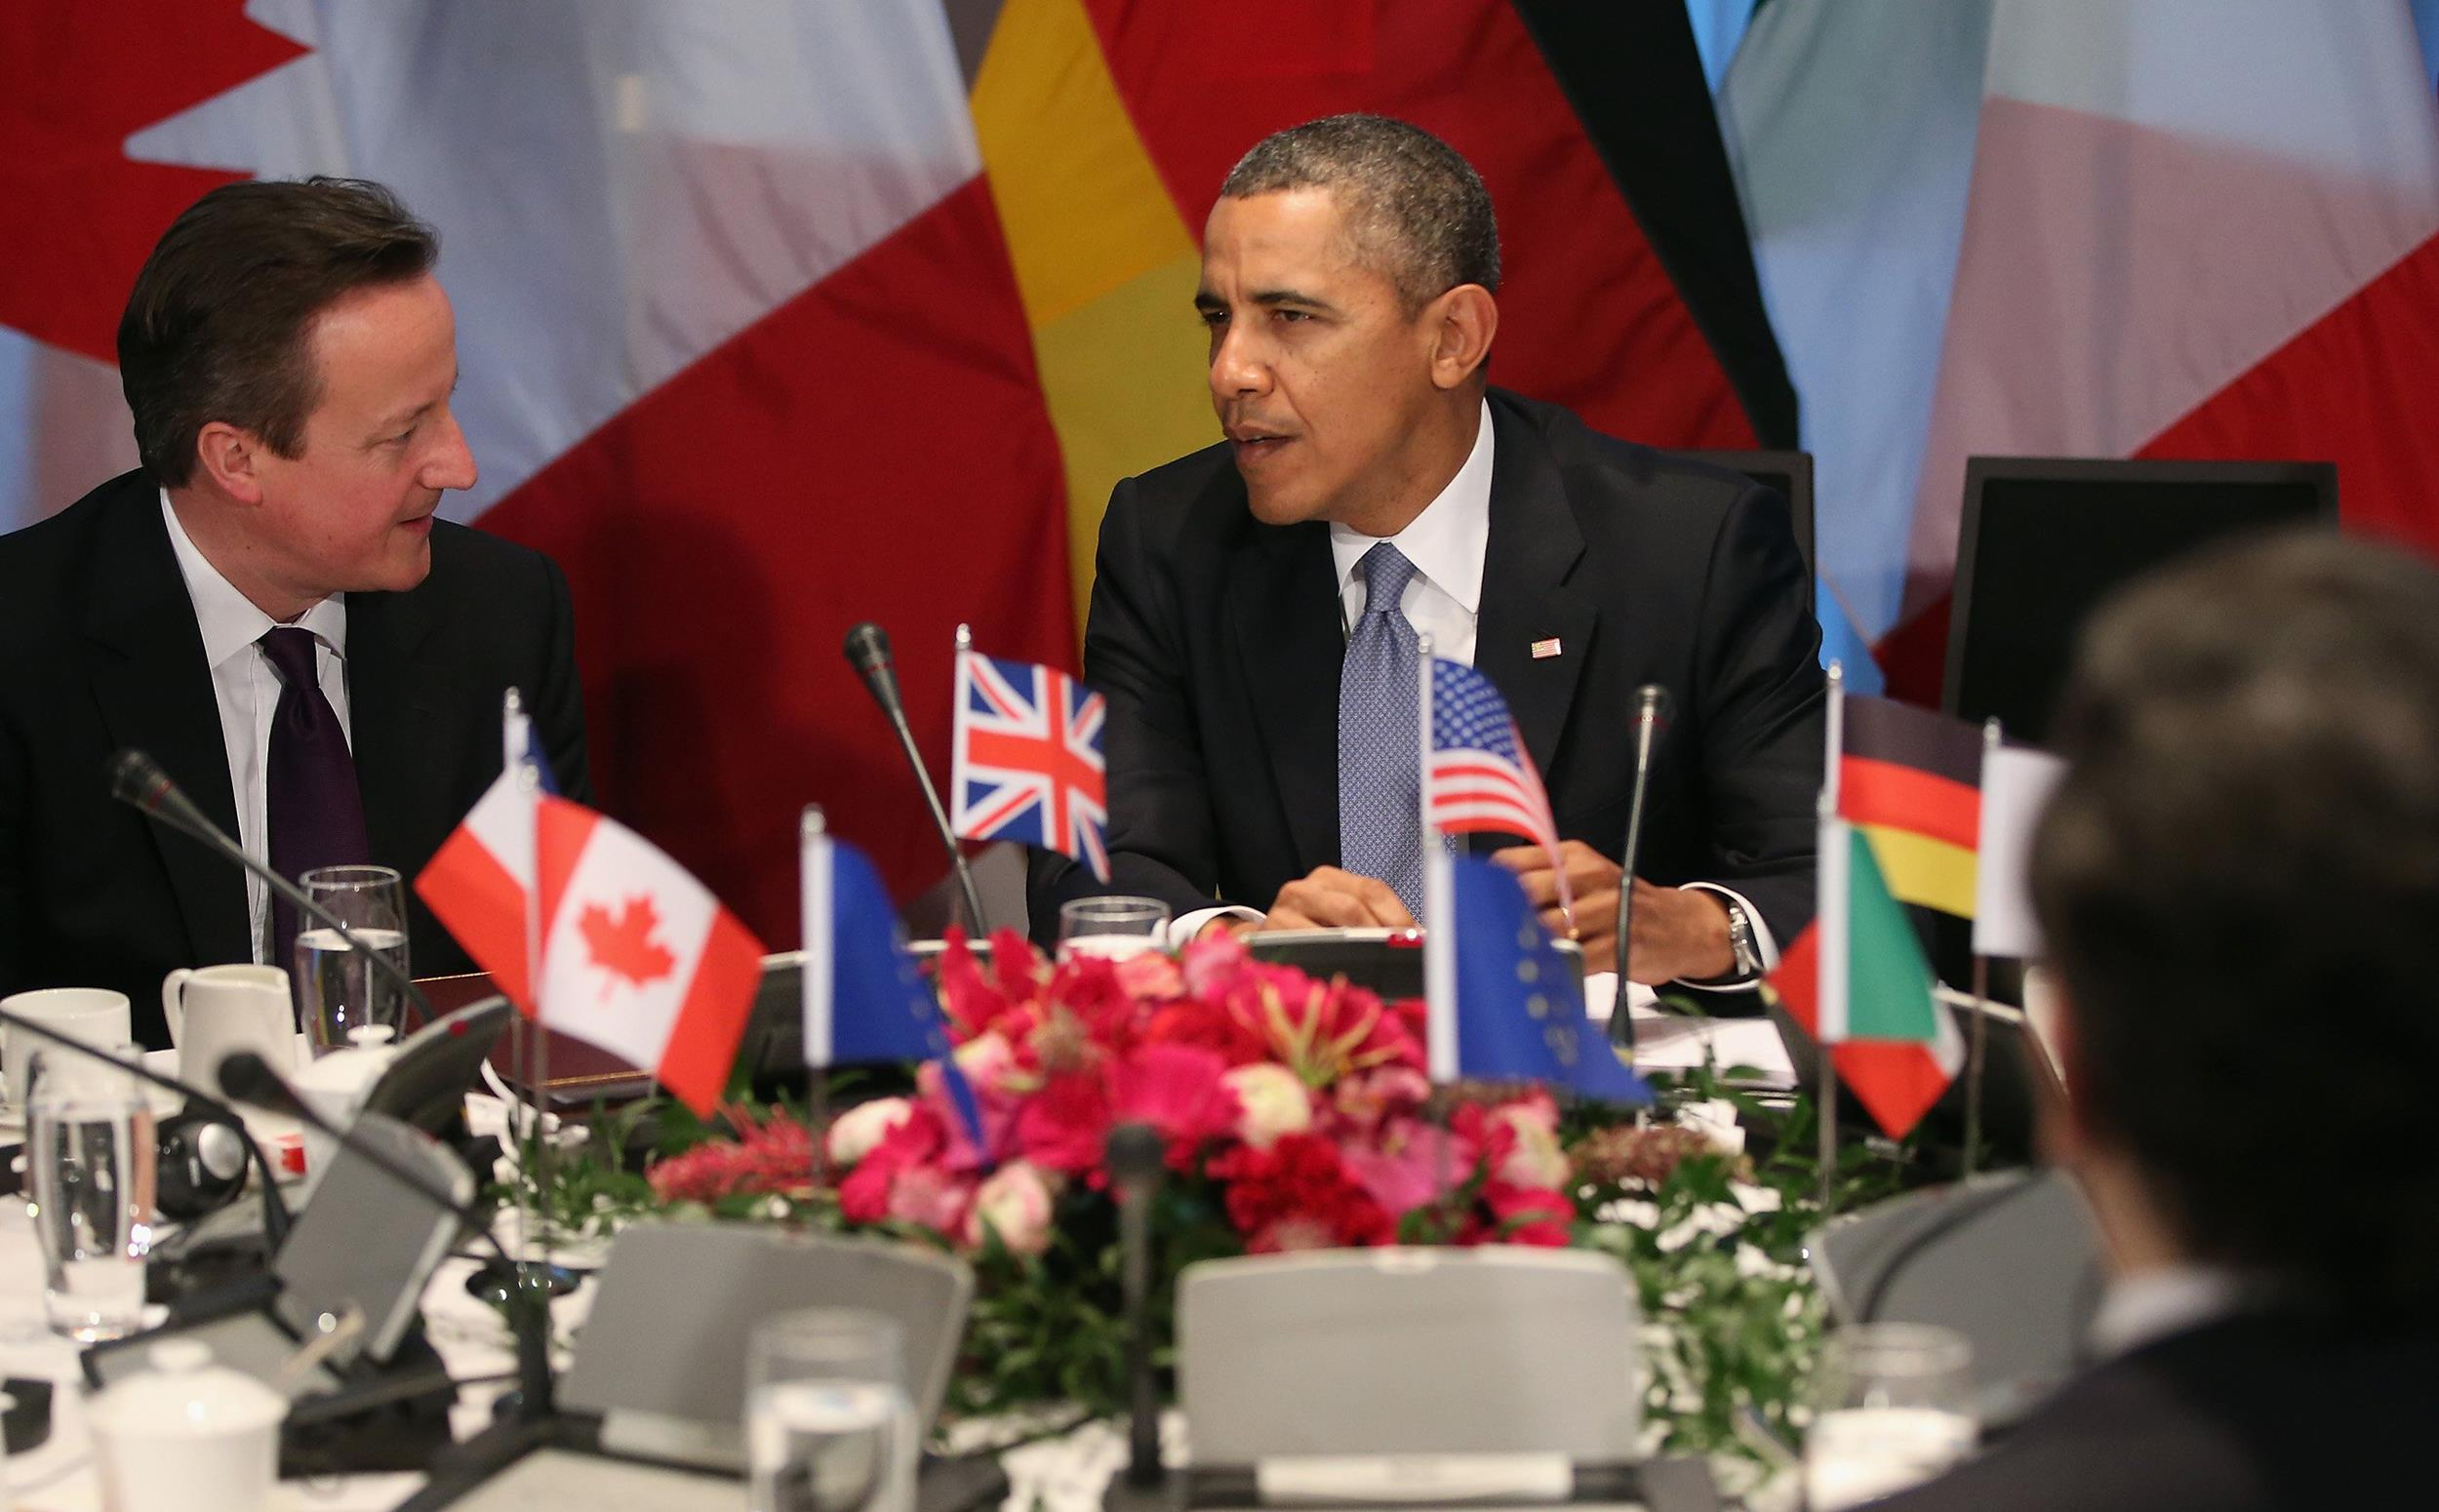 Image:  U.S. President Barack Obama chats with other G7 leaders